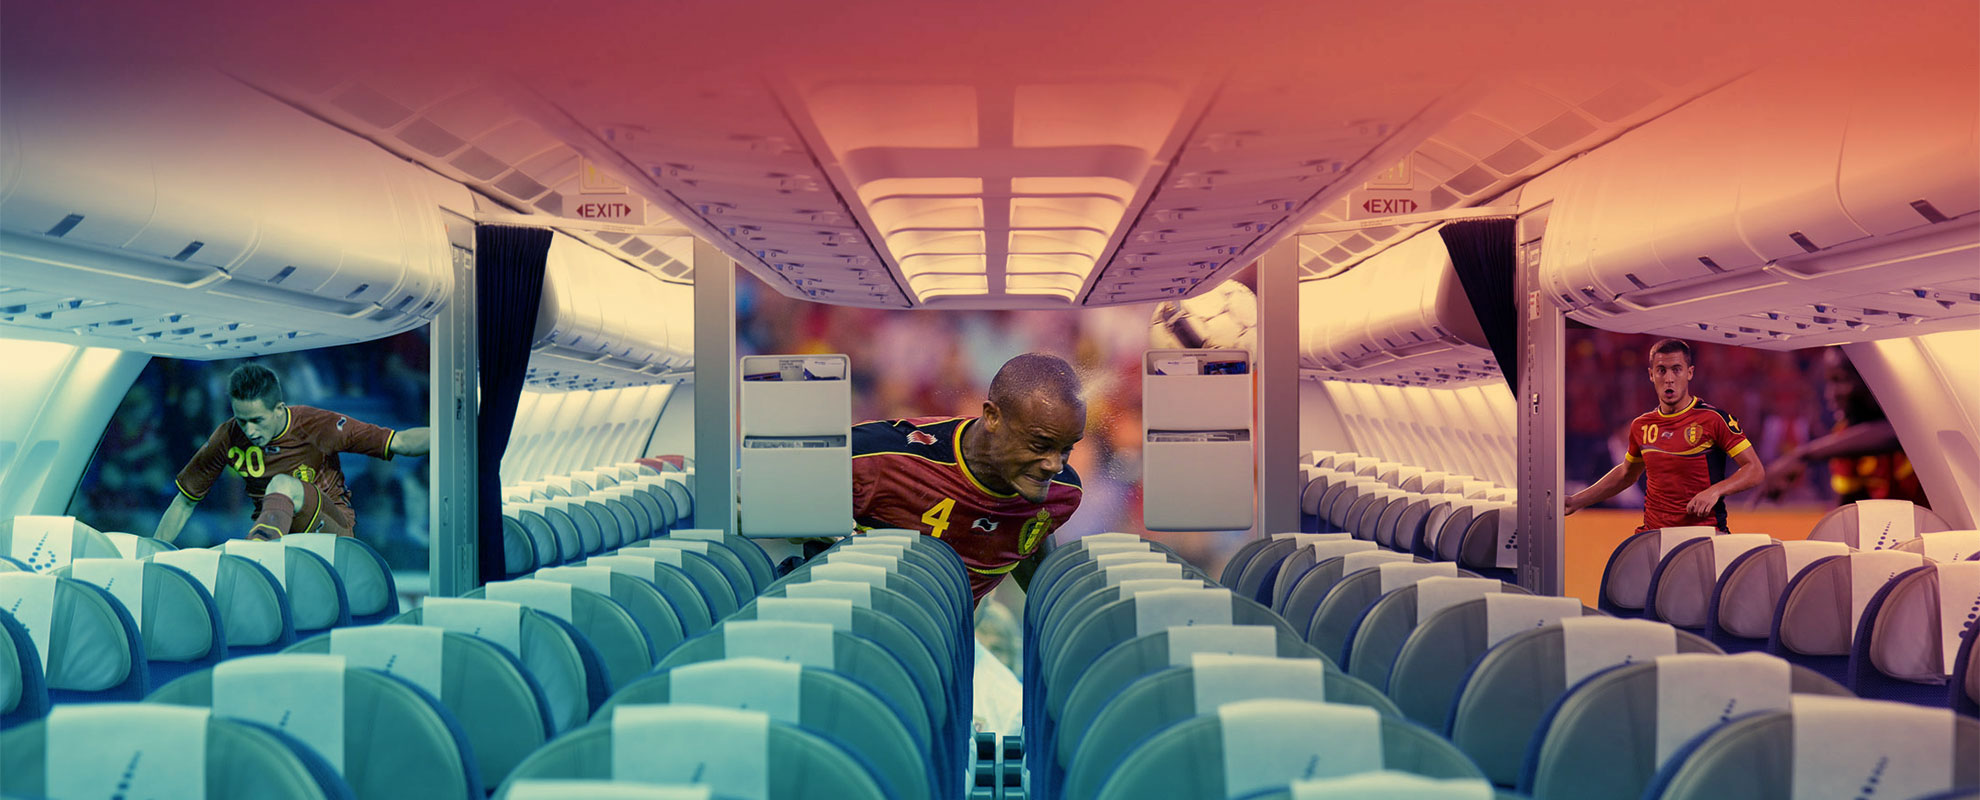 Belgium team aircraft interior decoration